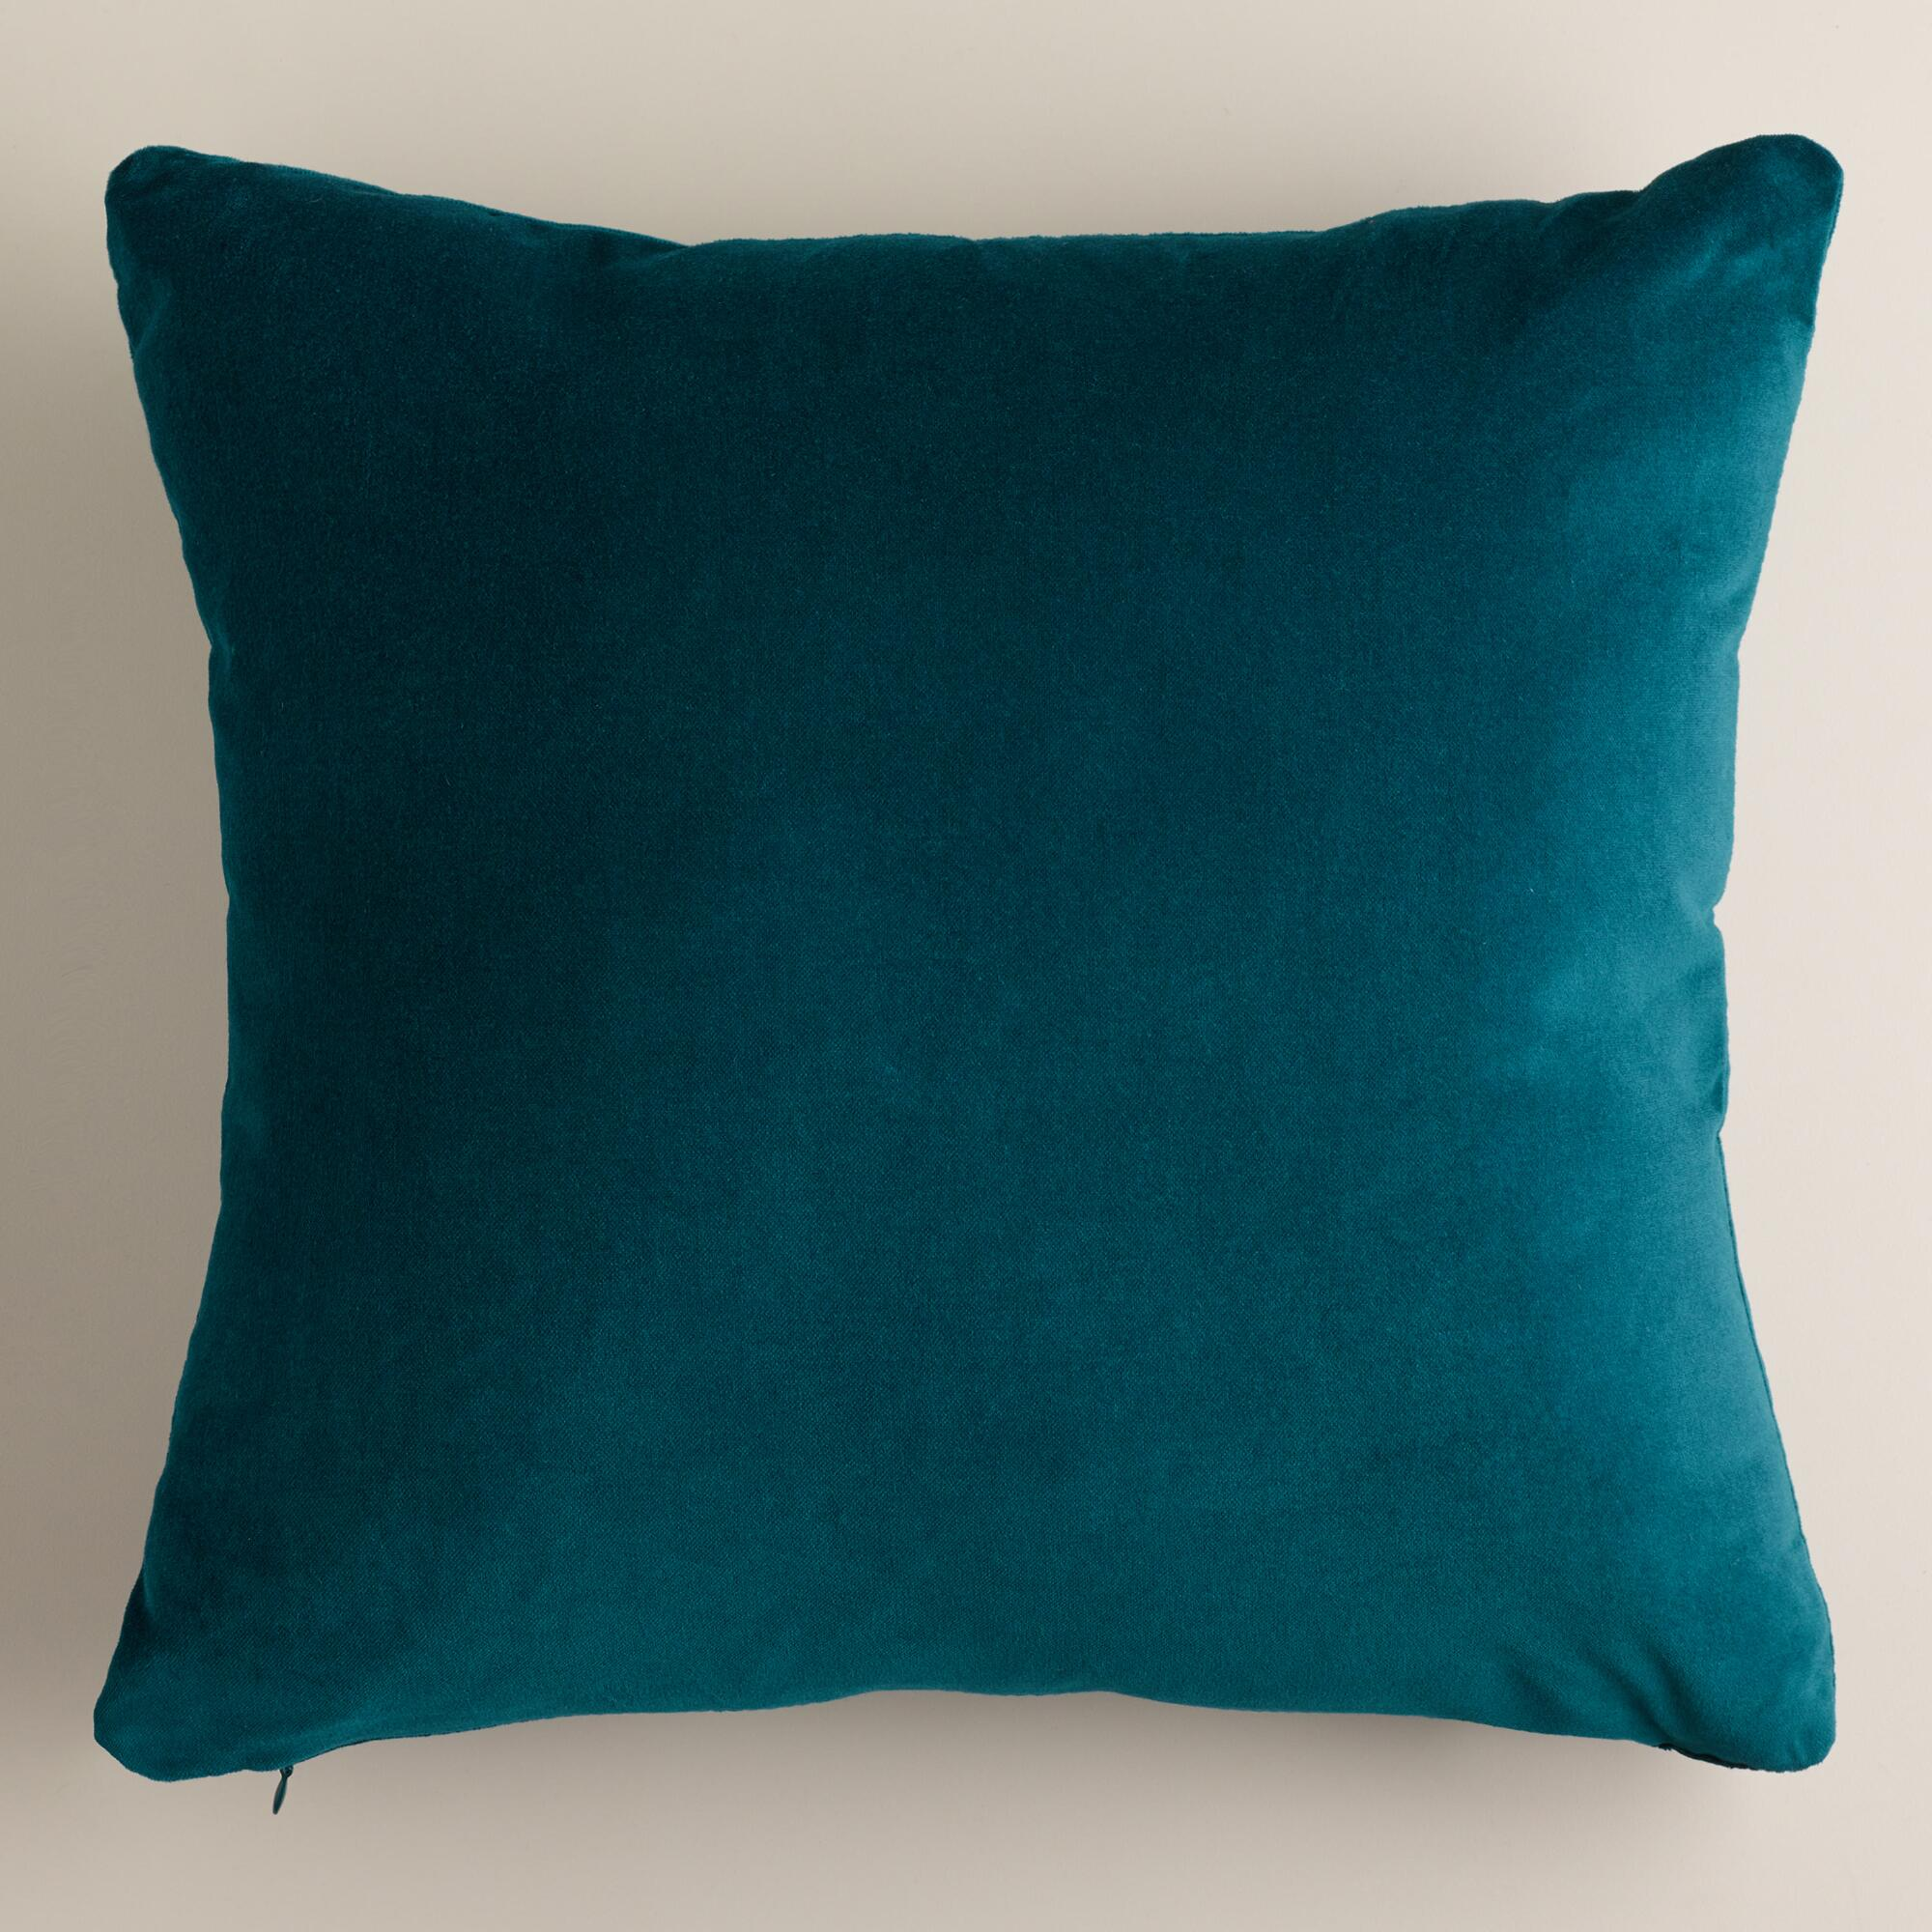 Admirable Cushions teal throw pillows for Queen bed size king bedsize or sectional sofa also wicker rattan chairs for living room accesories parts furniture ideas